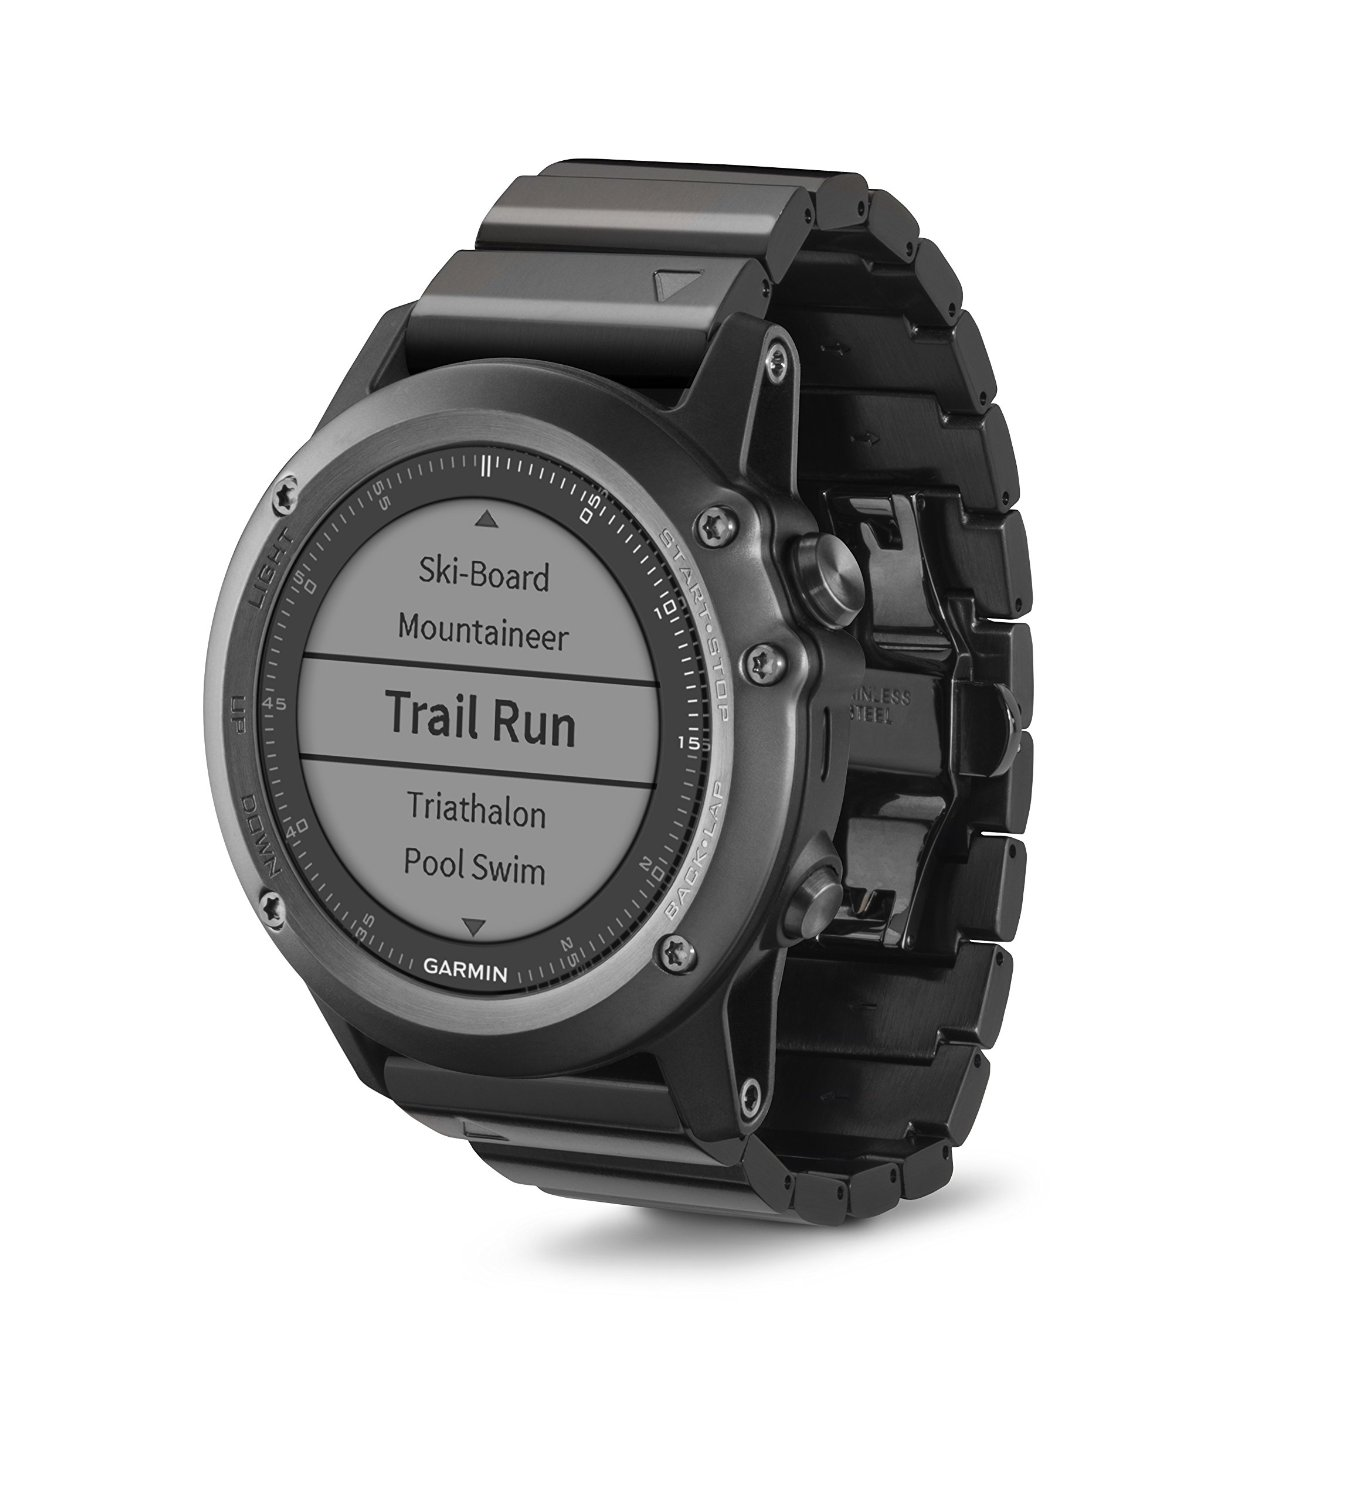 garmin fenix 3 saphir im vergleich. Black Bedroom Furniture Sets. Home Design Ideas